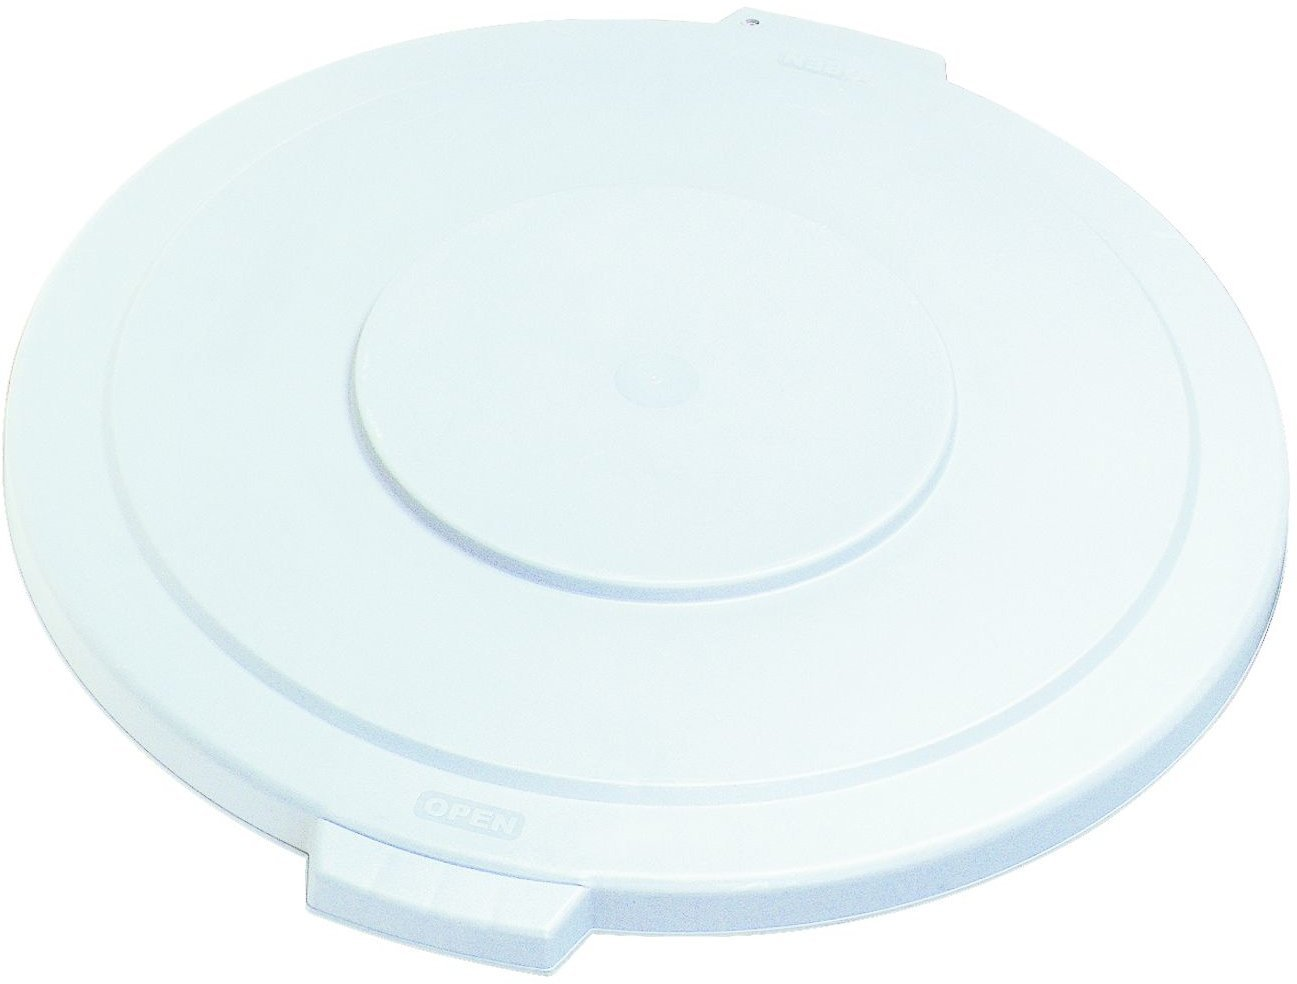 Carlisle 34105602 Bronco Polyethylene Round Lid, 26-1/2 x 2-1/4'', White, For 55-gal. Trash Containers (Case of 2)